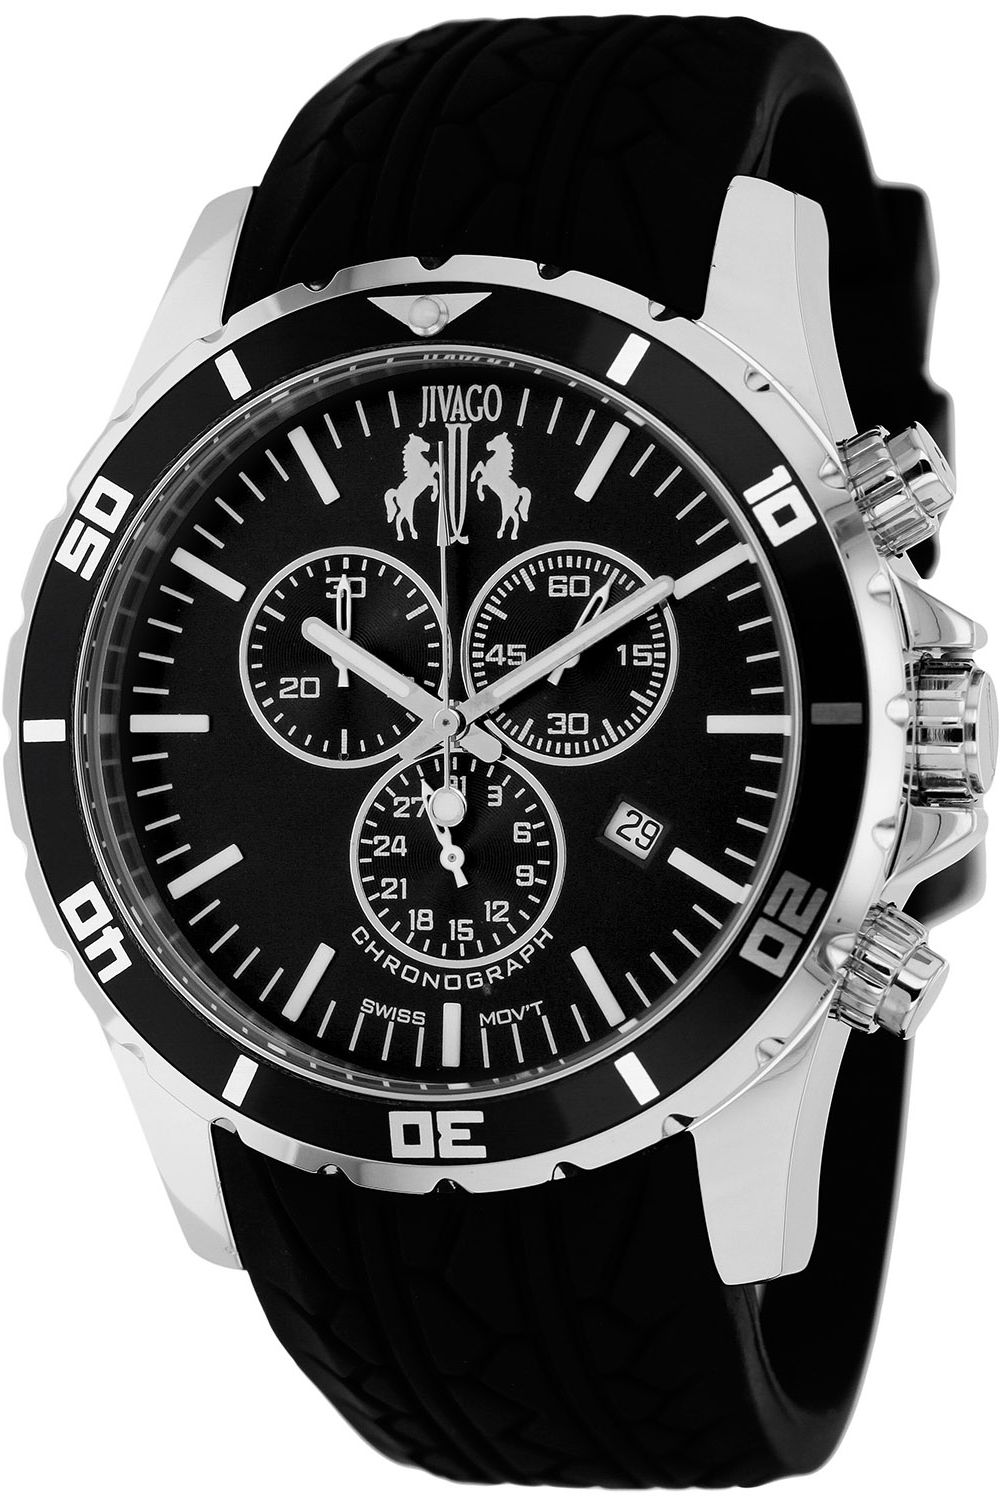 Elegant and stylish. This Jivago watch is perfect